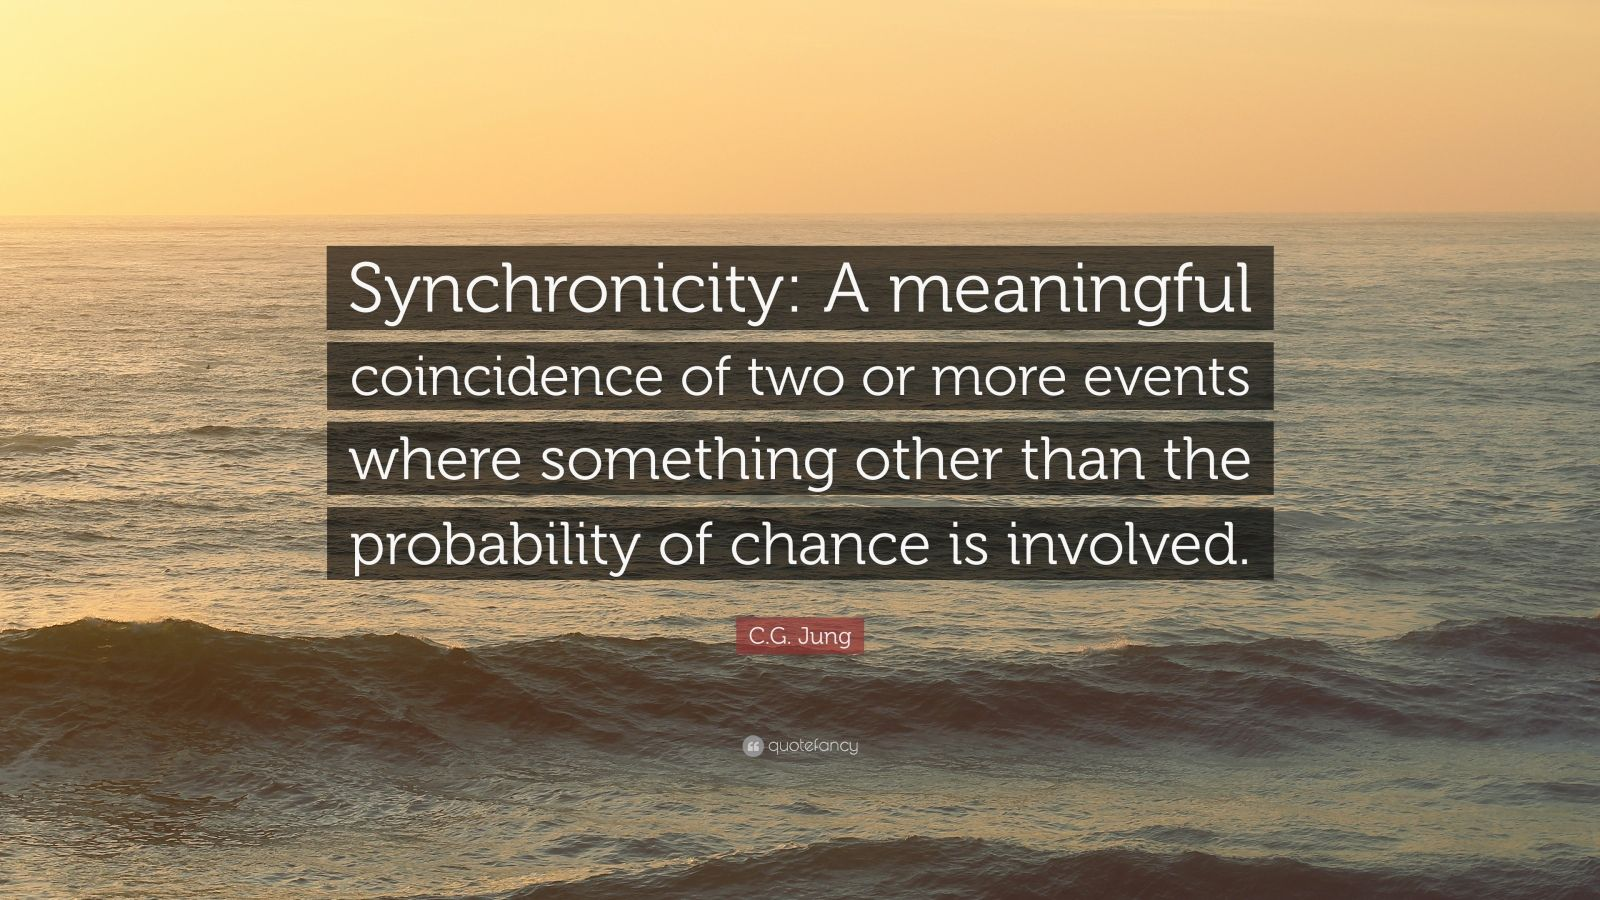 """C.G. Jung Quote: """"Synchronicity: A meaningful coincidence of two or more events where something other than the probability of chance is involved."""""""